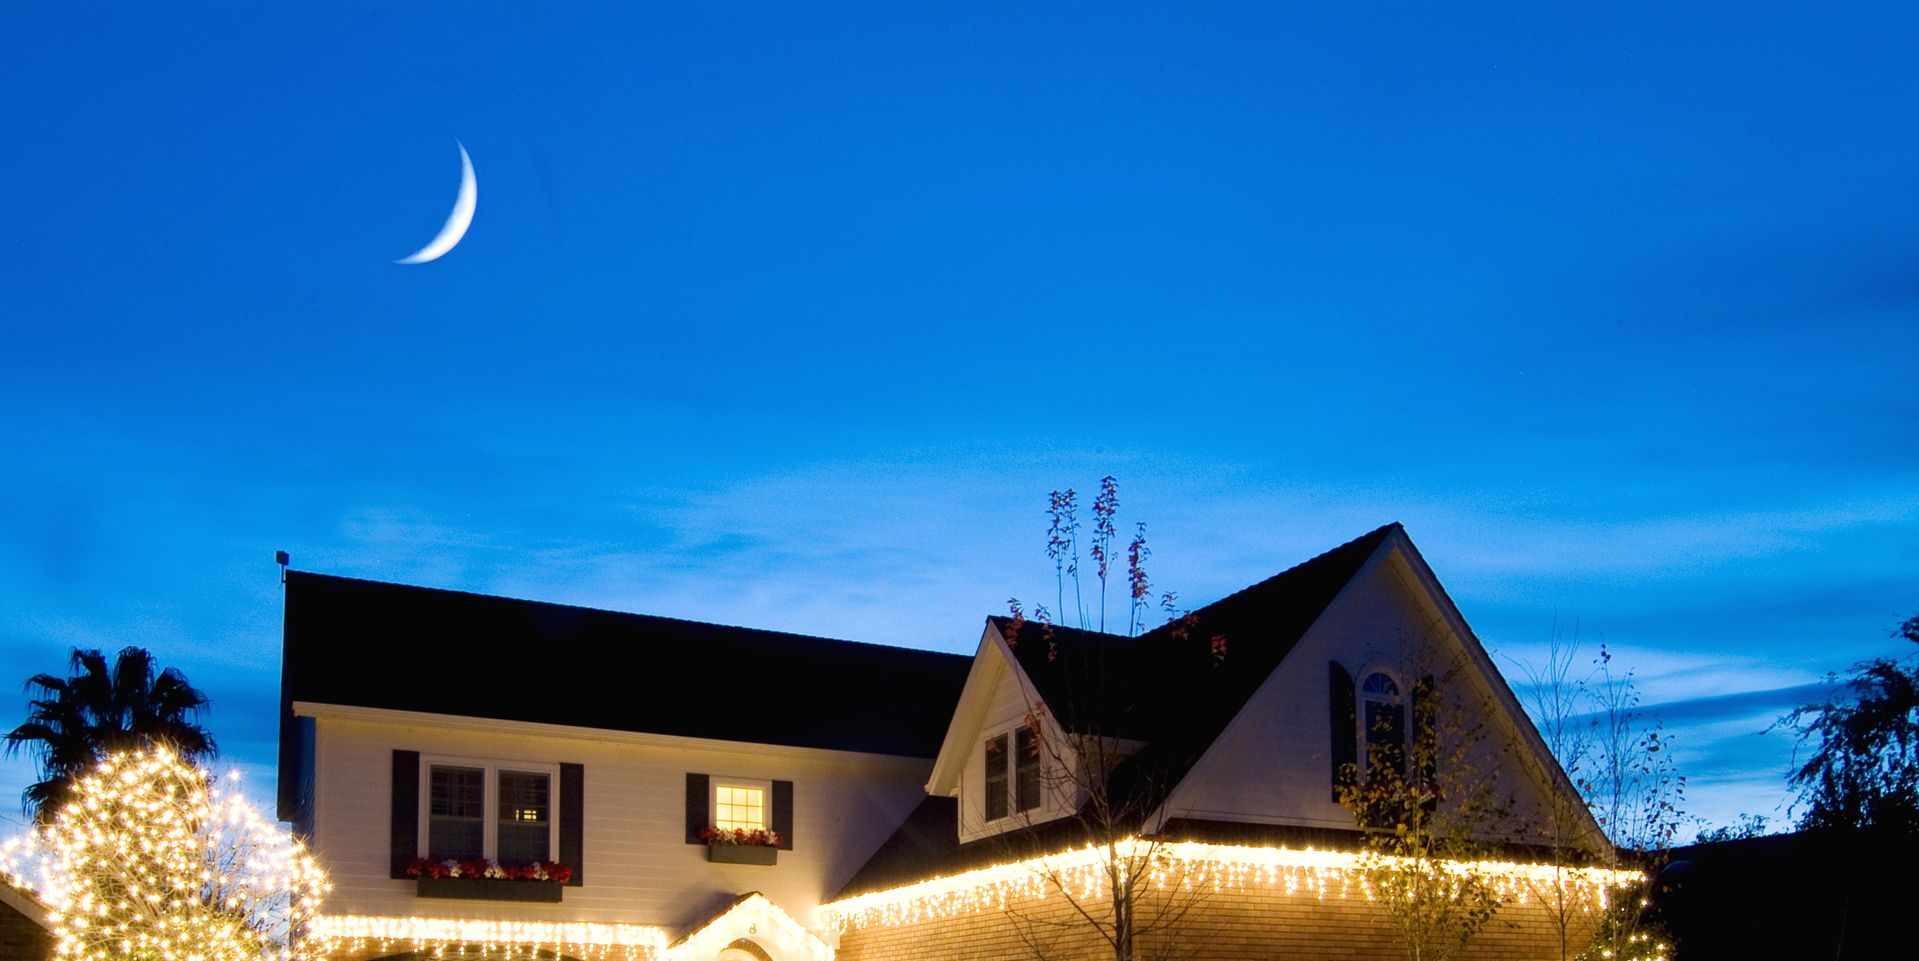 People Are Putting Their Christmas Lights Back Up Amid Coronavirus Fears